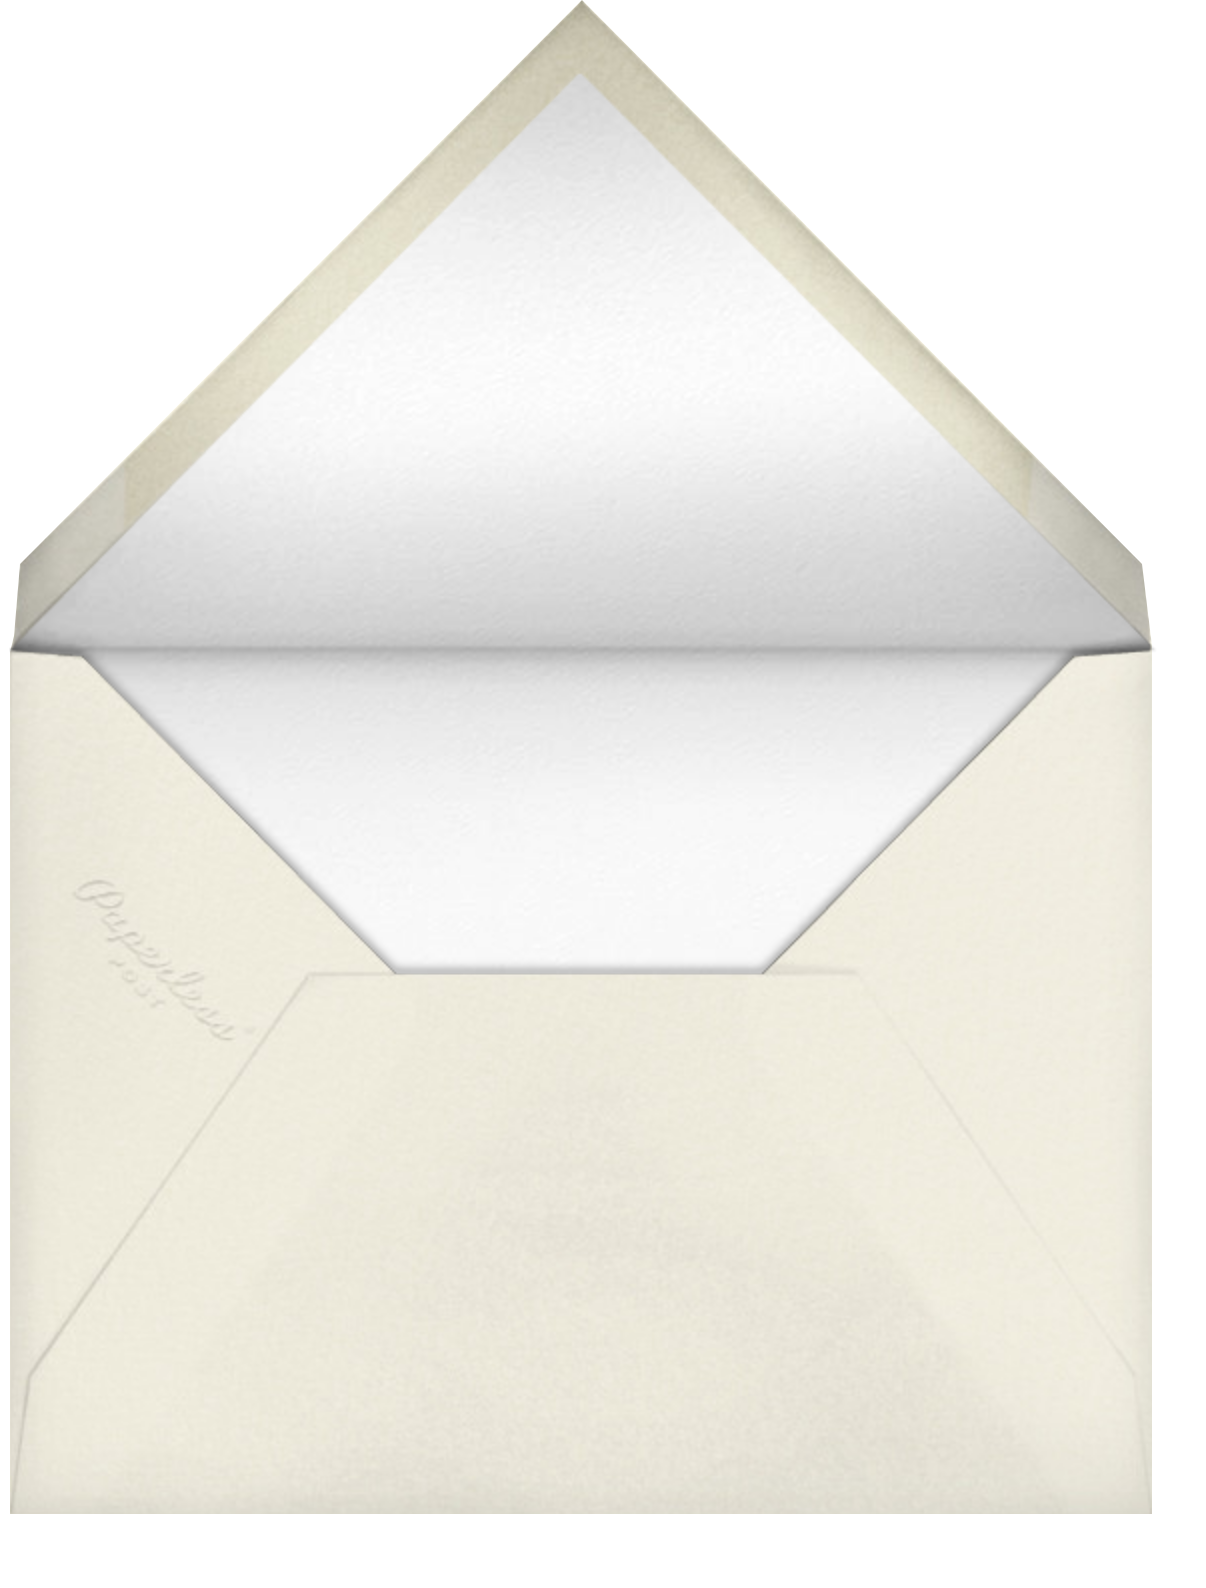 Deckle - Ash Square - Paperless Post - null - envelope back